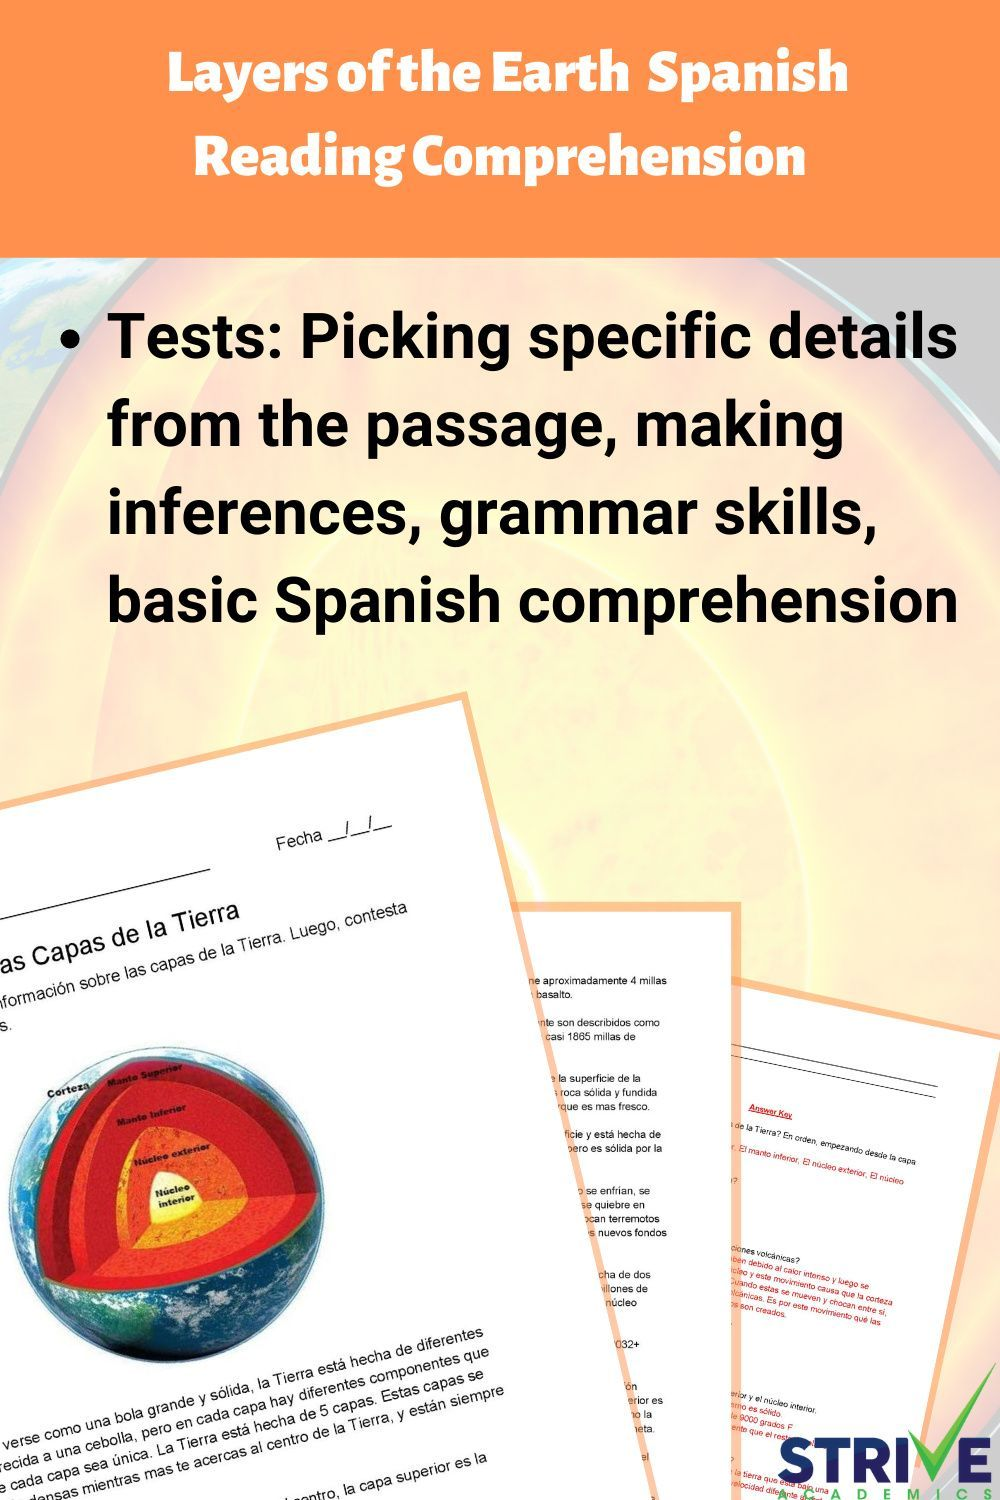 Layers Of The Earth Spanish Reading Comprehension Worksheet In 2021 Reading Comprehension Spanish Reading Comprehension Reading Comprehension Worksheets [ 1500 x 1000 Pixel ]